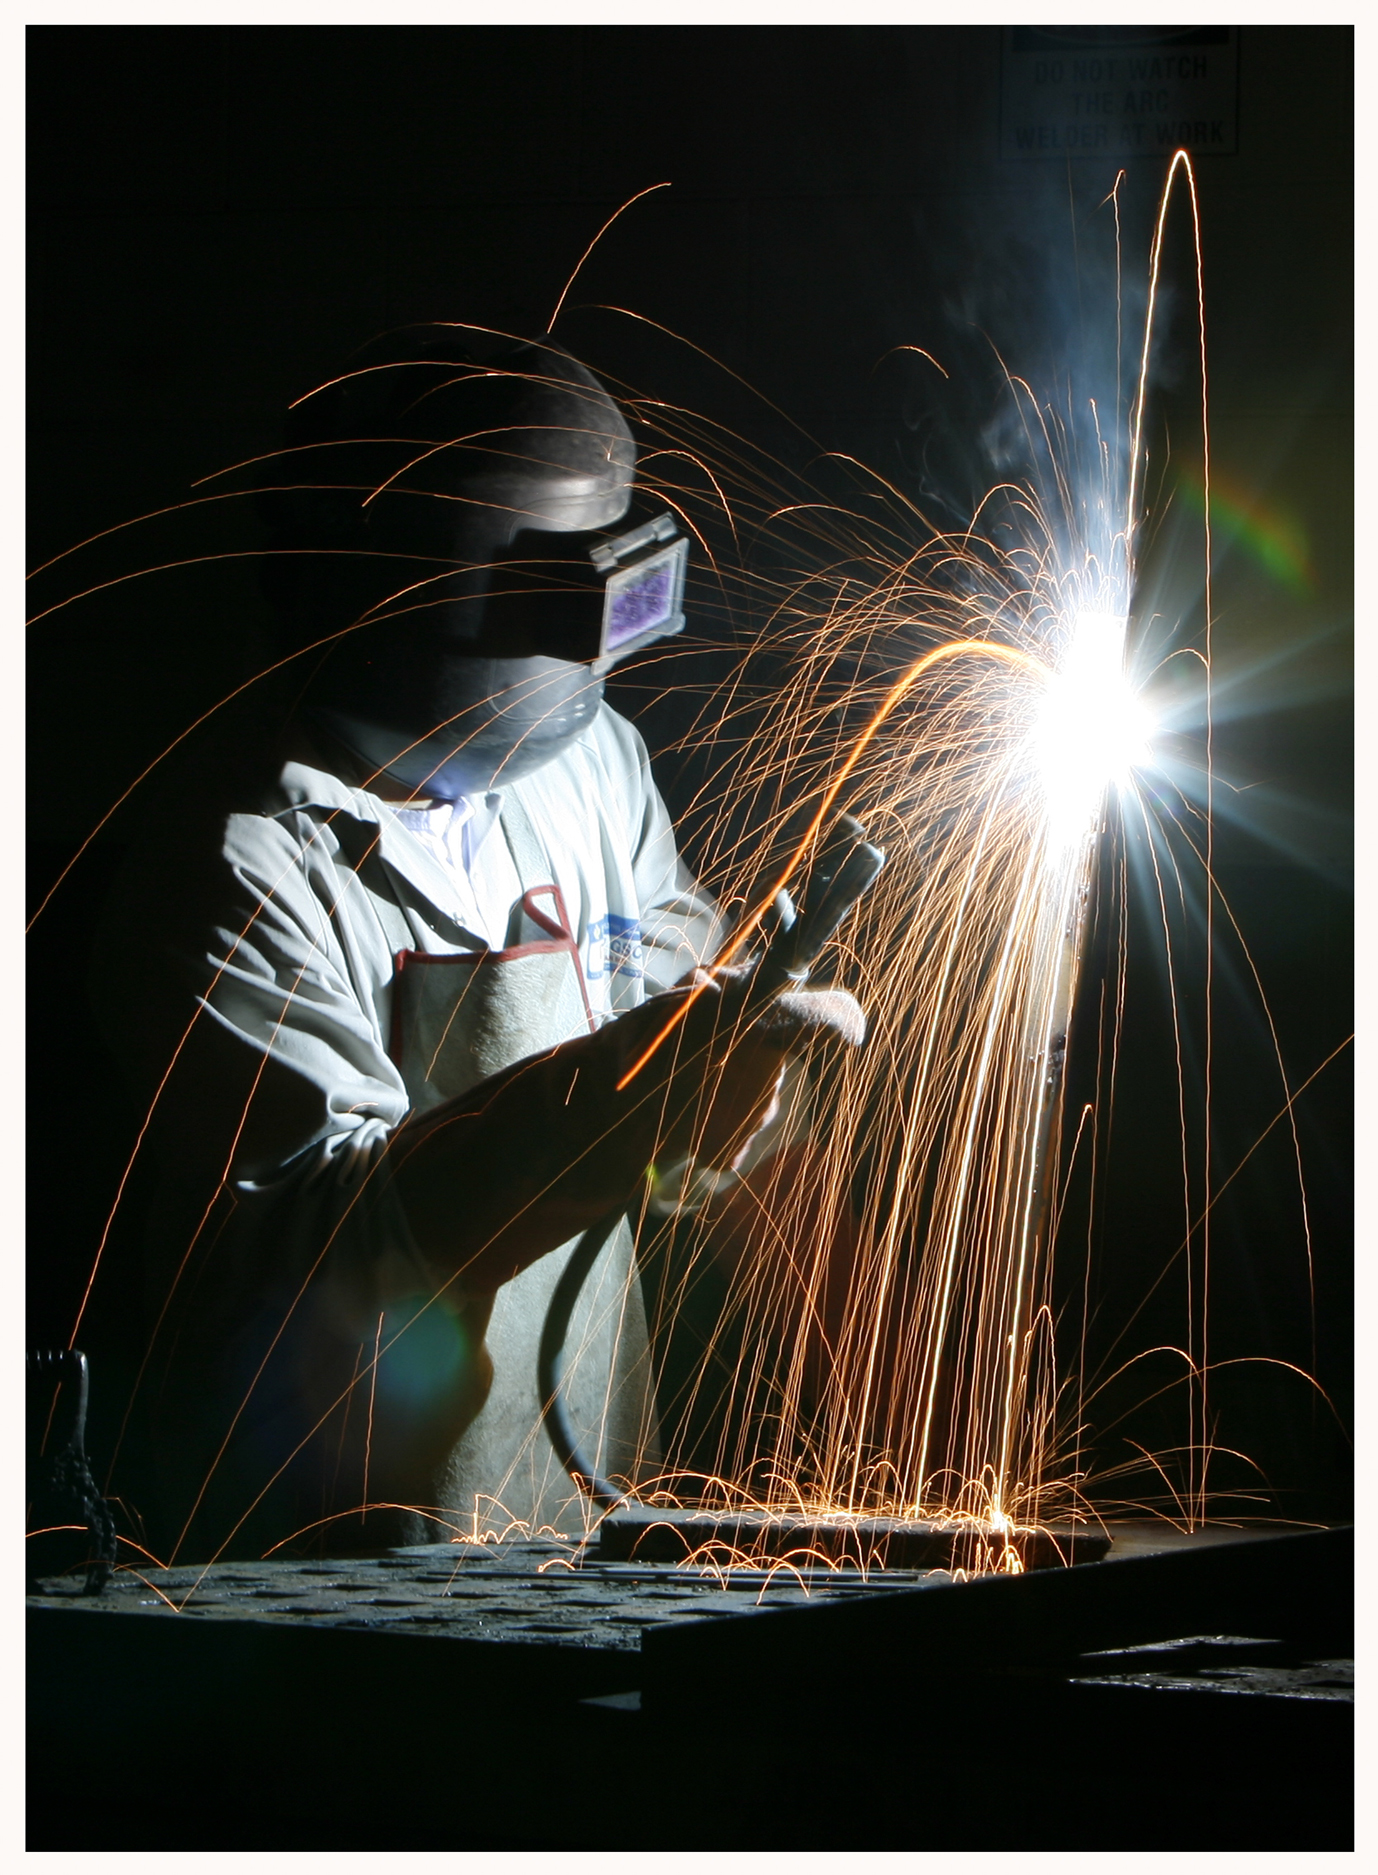 Welding, Metal, Industry, Structure